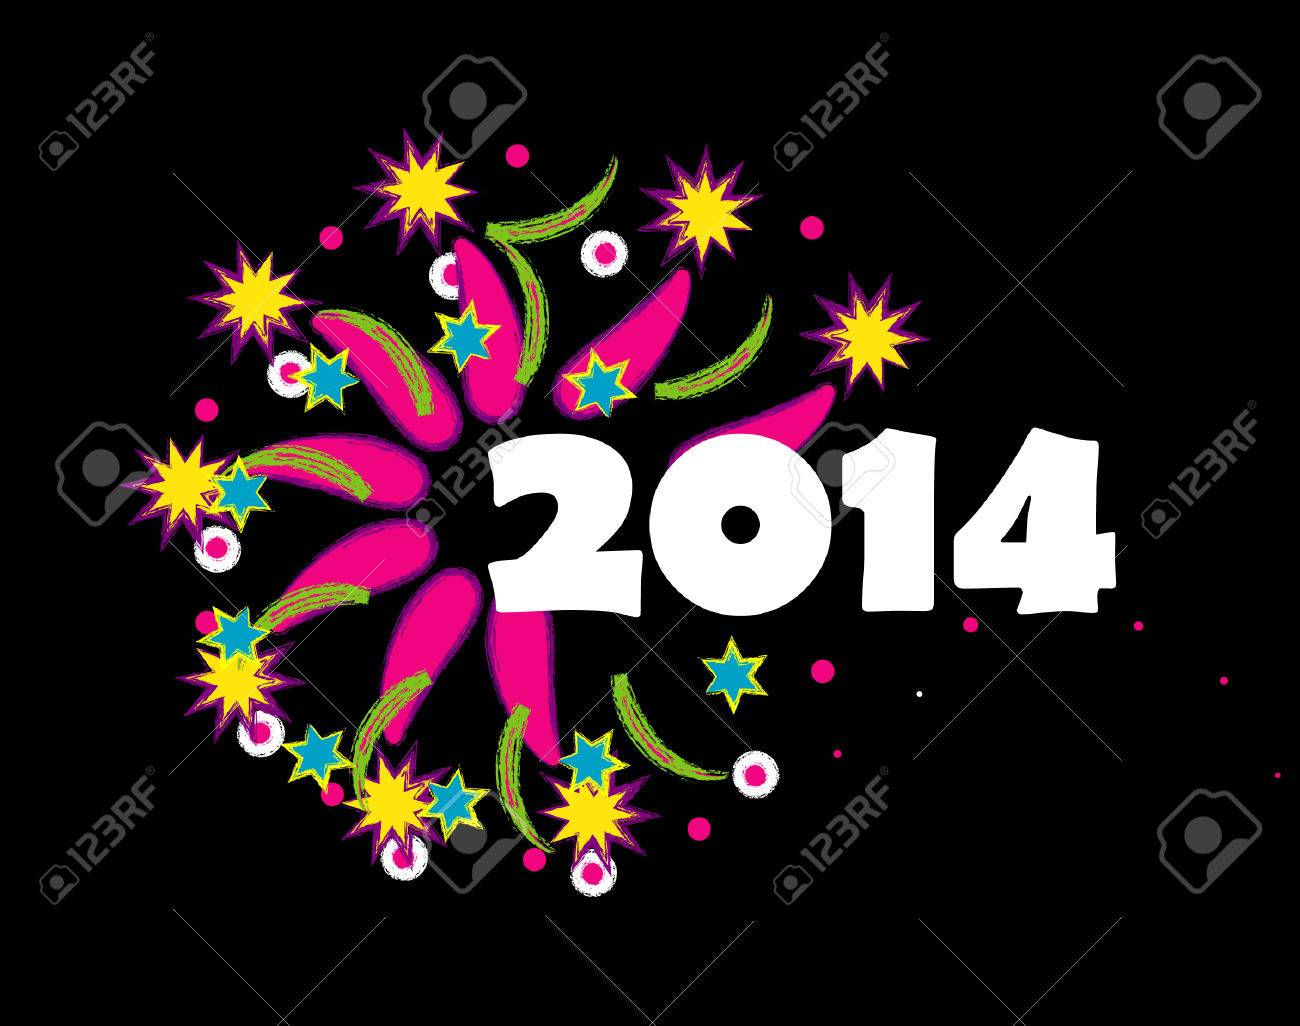 happy new year 2014 royalty free cliparts vectors and stock